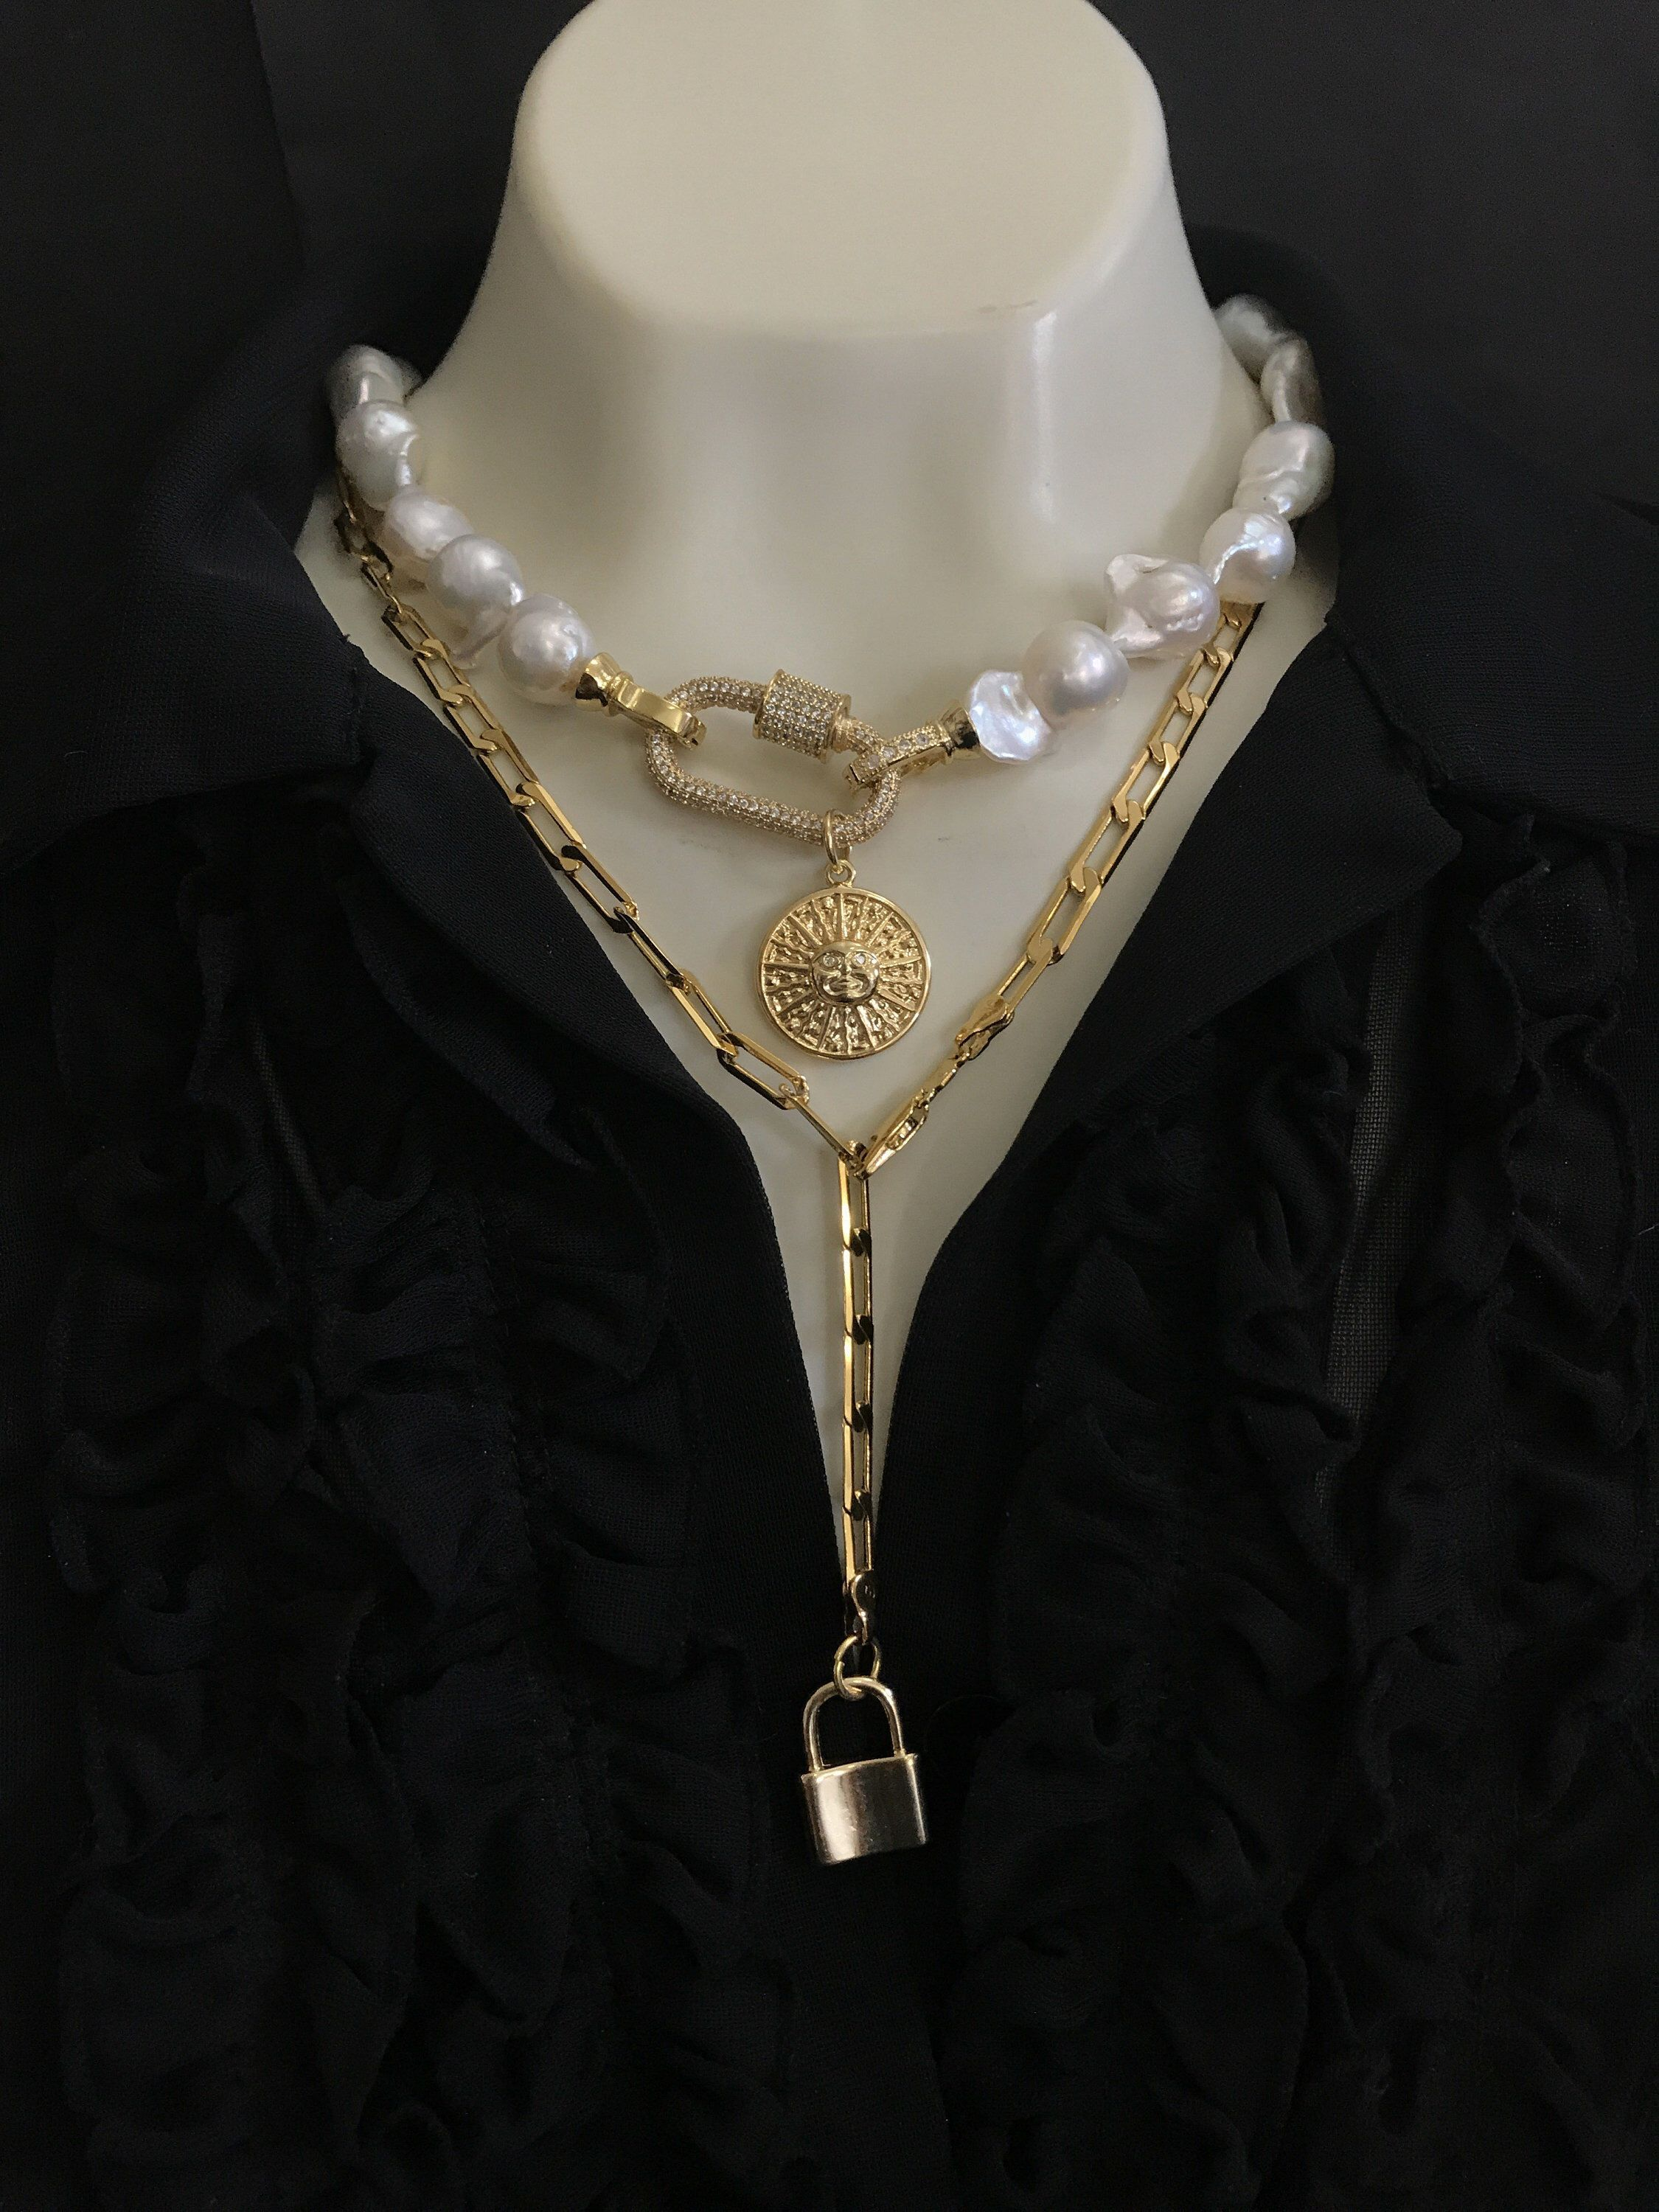 Star Coin Medallion Pearl Necklace baroque choker Gold Carabiner Metal Lock Golden Celestial Sun Pearl Choker gold medallion choker  Excited to share this item from my sh...